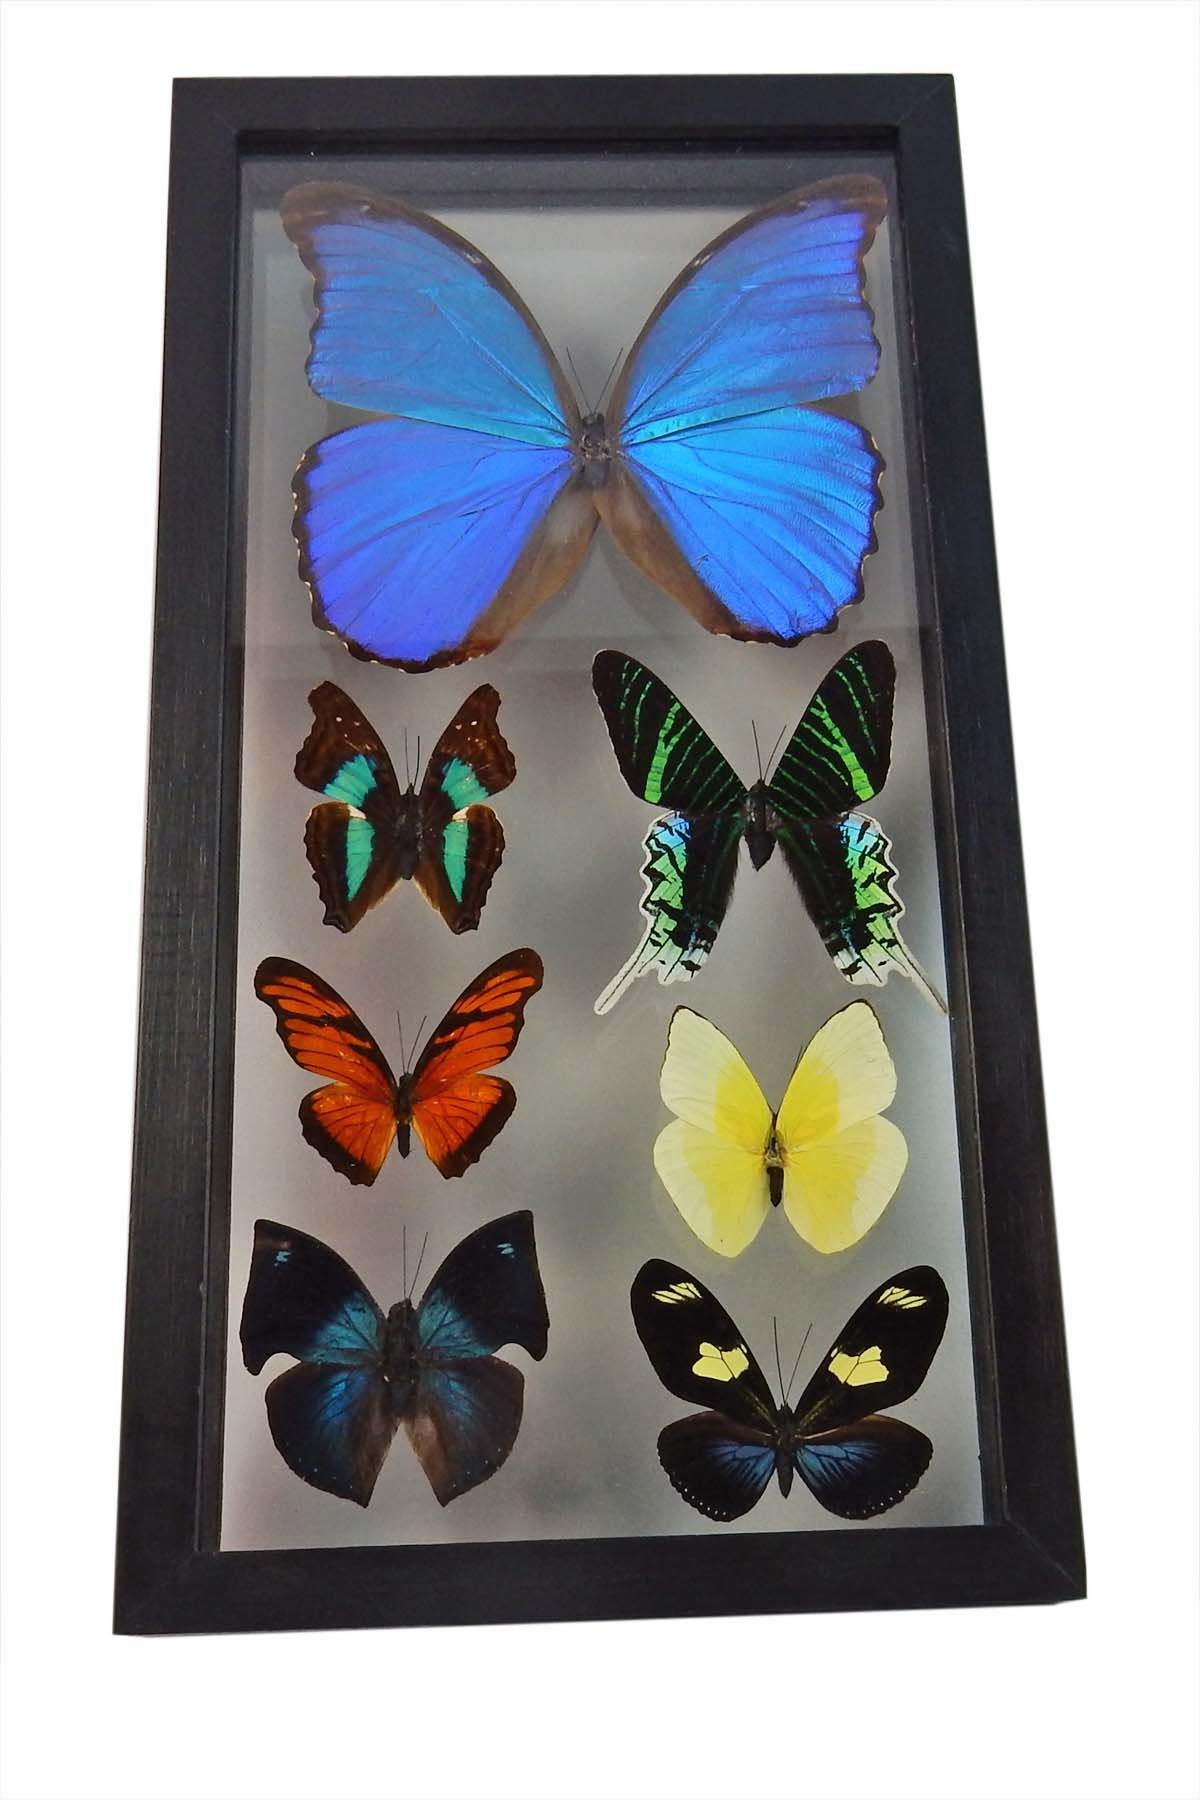 Amazing Blue Morpho Butterfly with Additional 6 Amazing Assorted Butterflies, Professionally Mounted, with Beverly Oaks Certificate of Authenticity